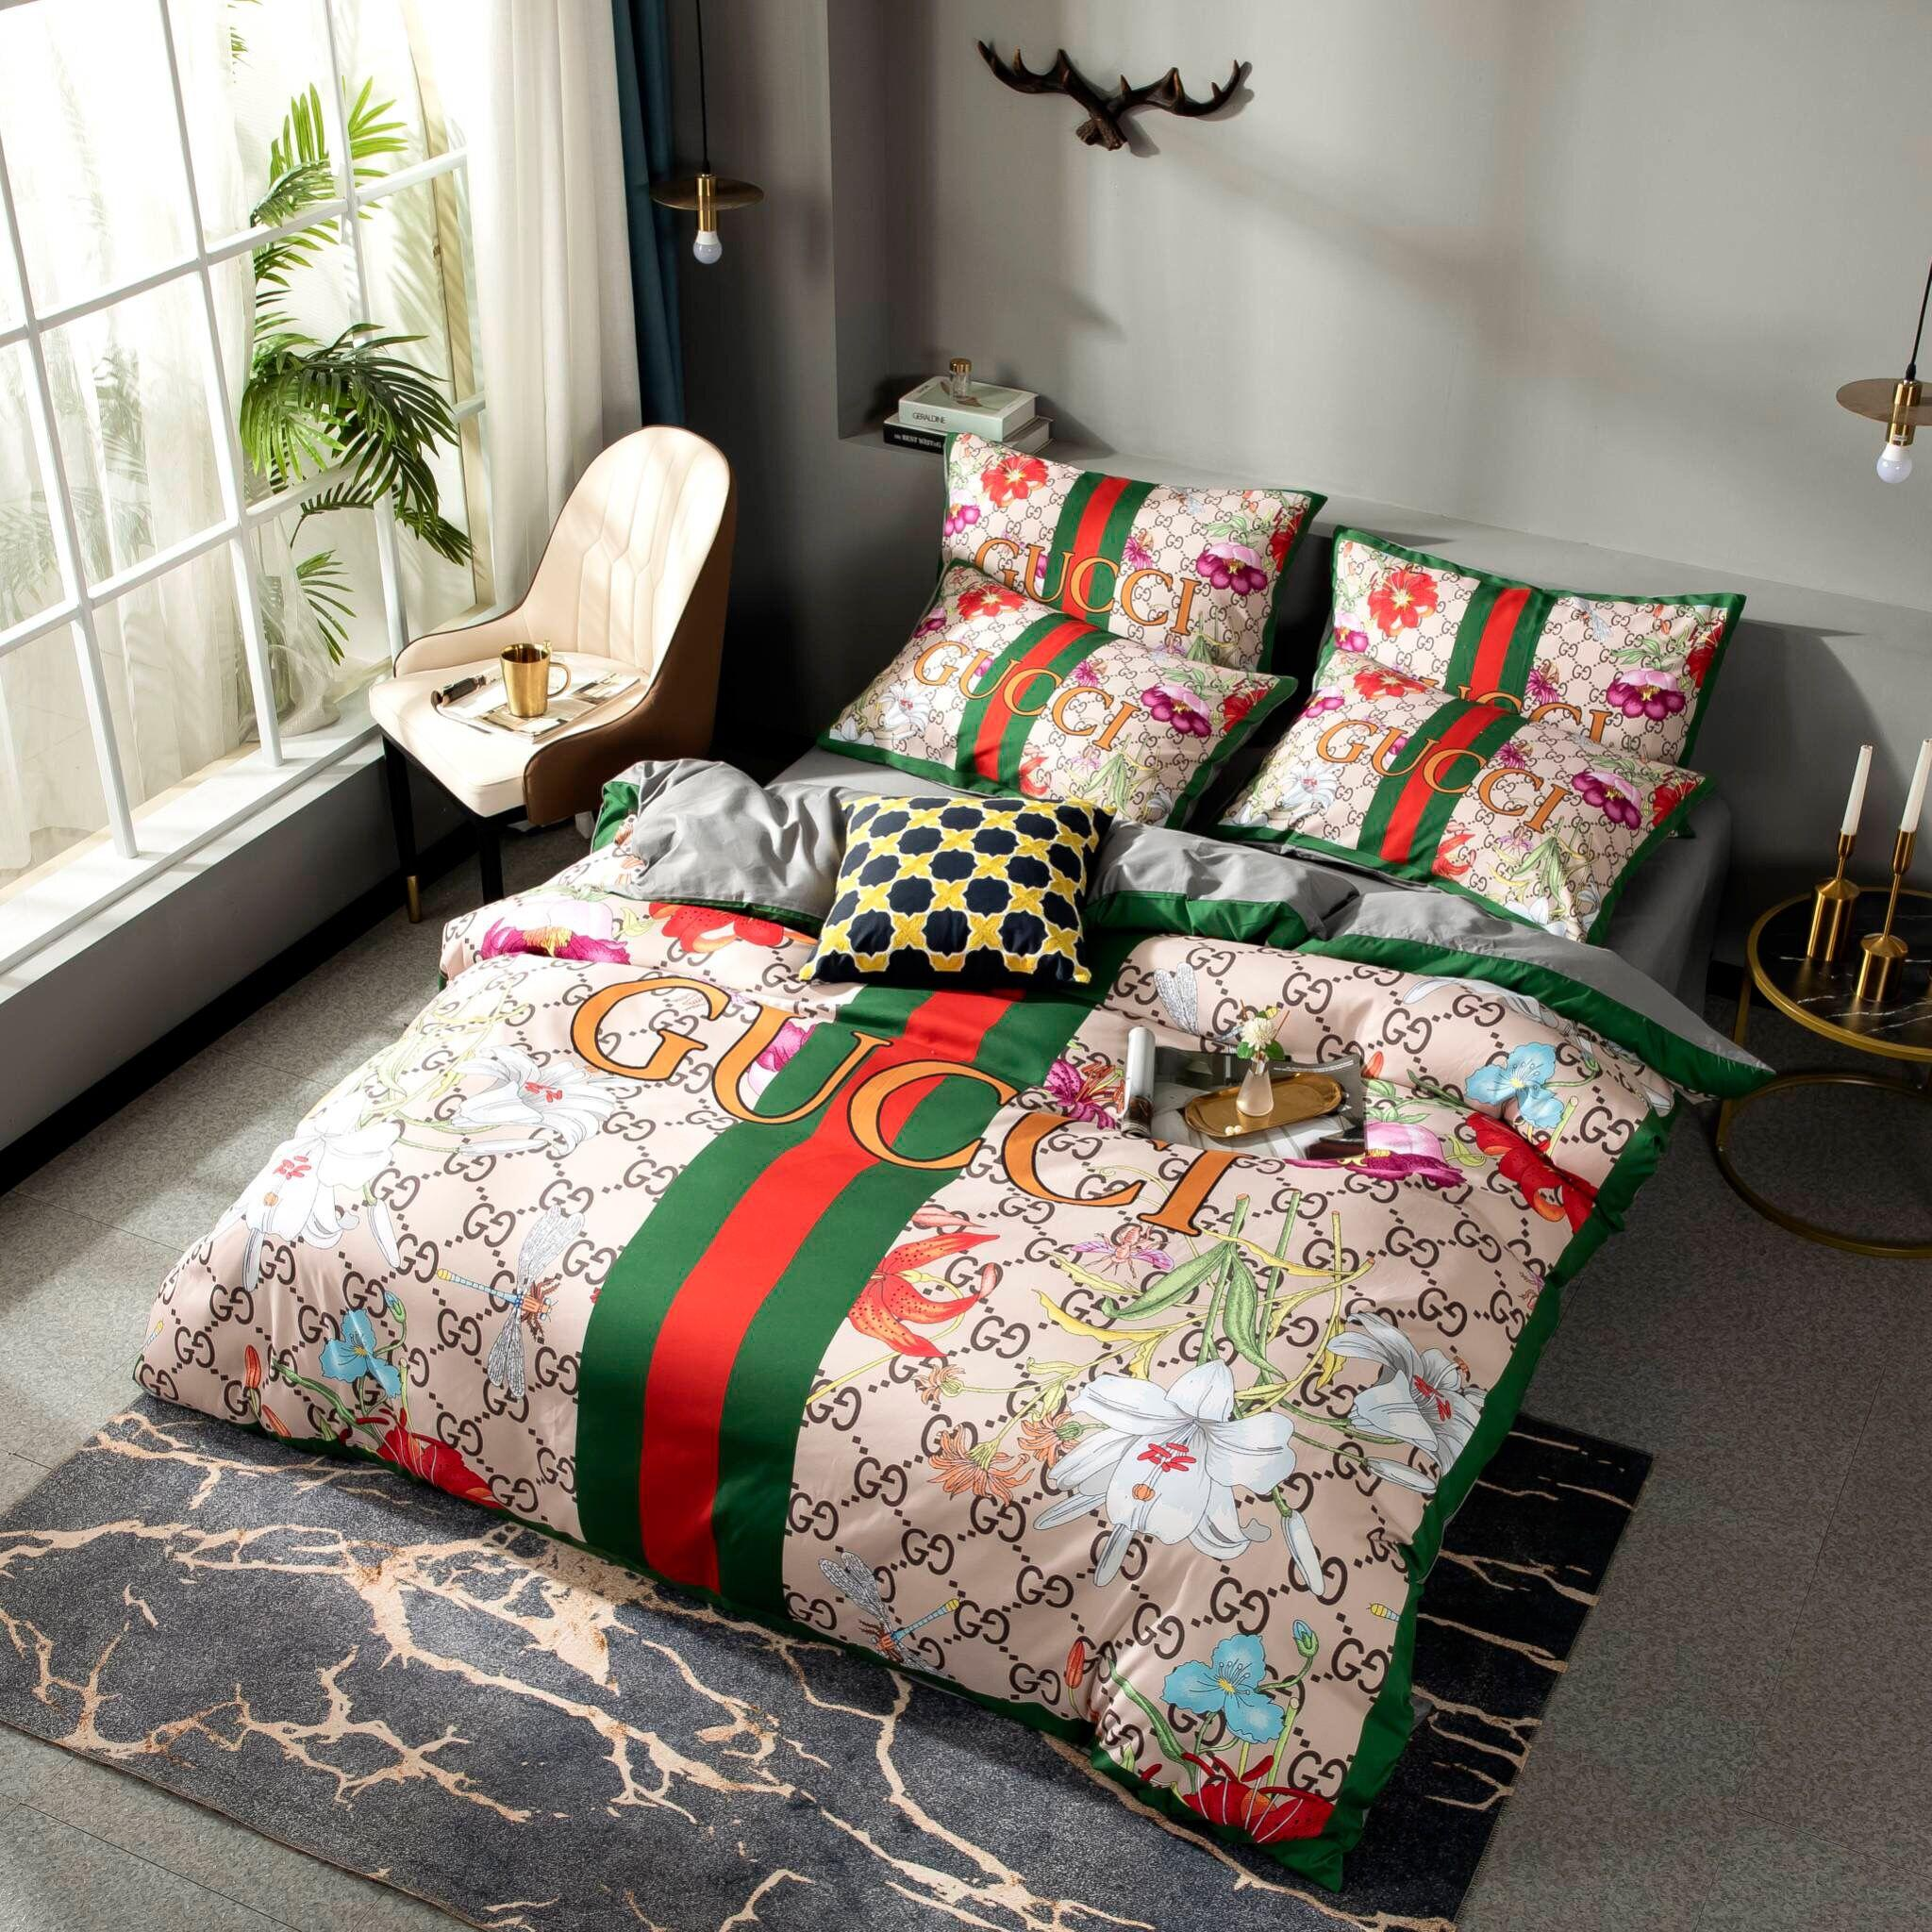 2020 G Luxury Bedding Sets Red And Green Designer Duvet Cover Set Cotton Designer Bed Sheets Queen Bed Sets Simple Designer Bedding Contemporary Bedding Cotton Duvet Covers From Designer Home 104 16 Dhgate Com